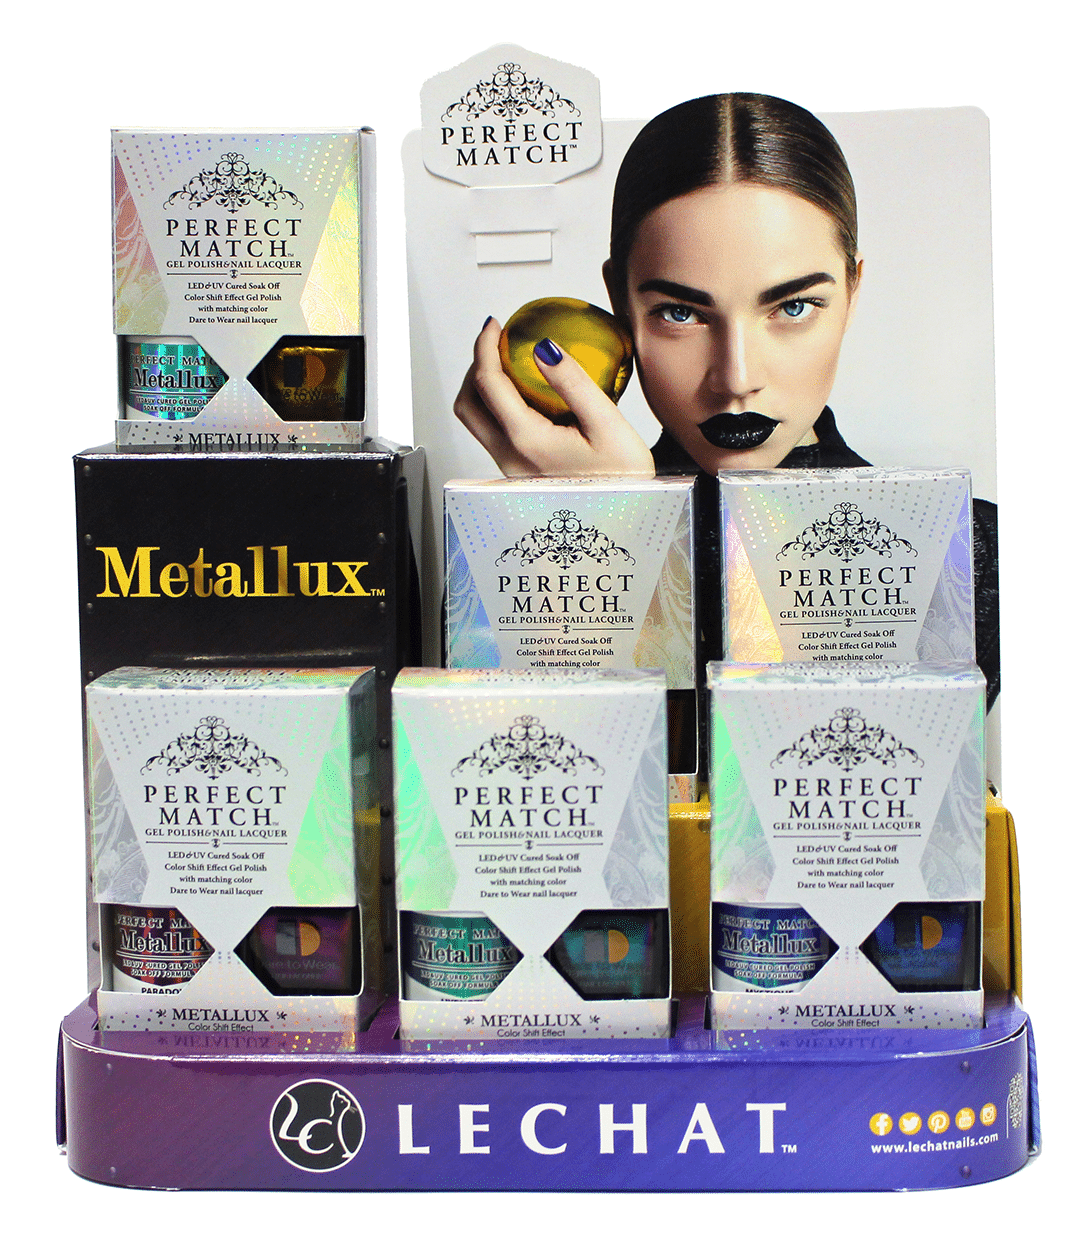 set of Perfect Match Metallux products